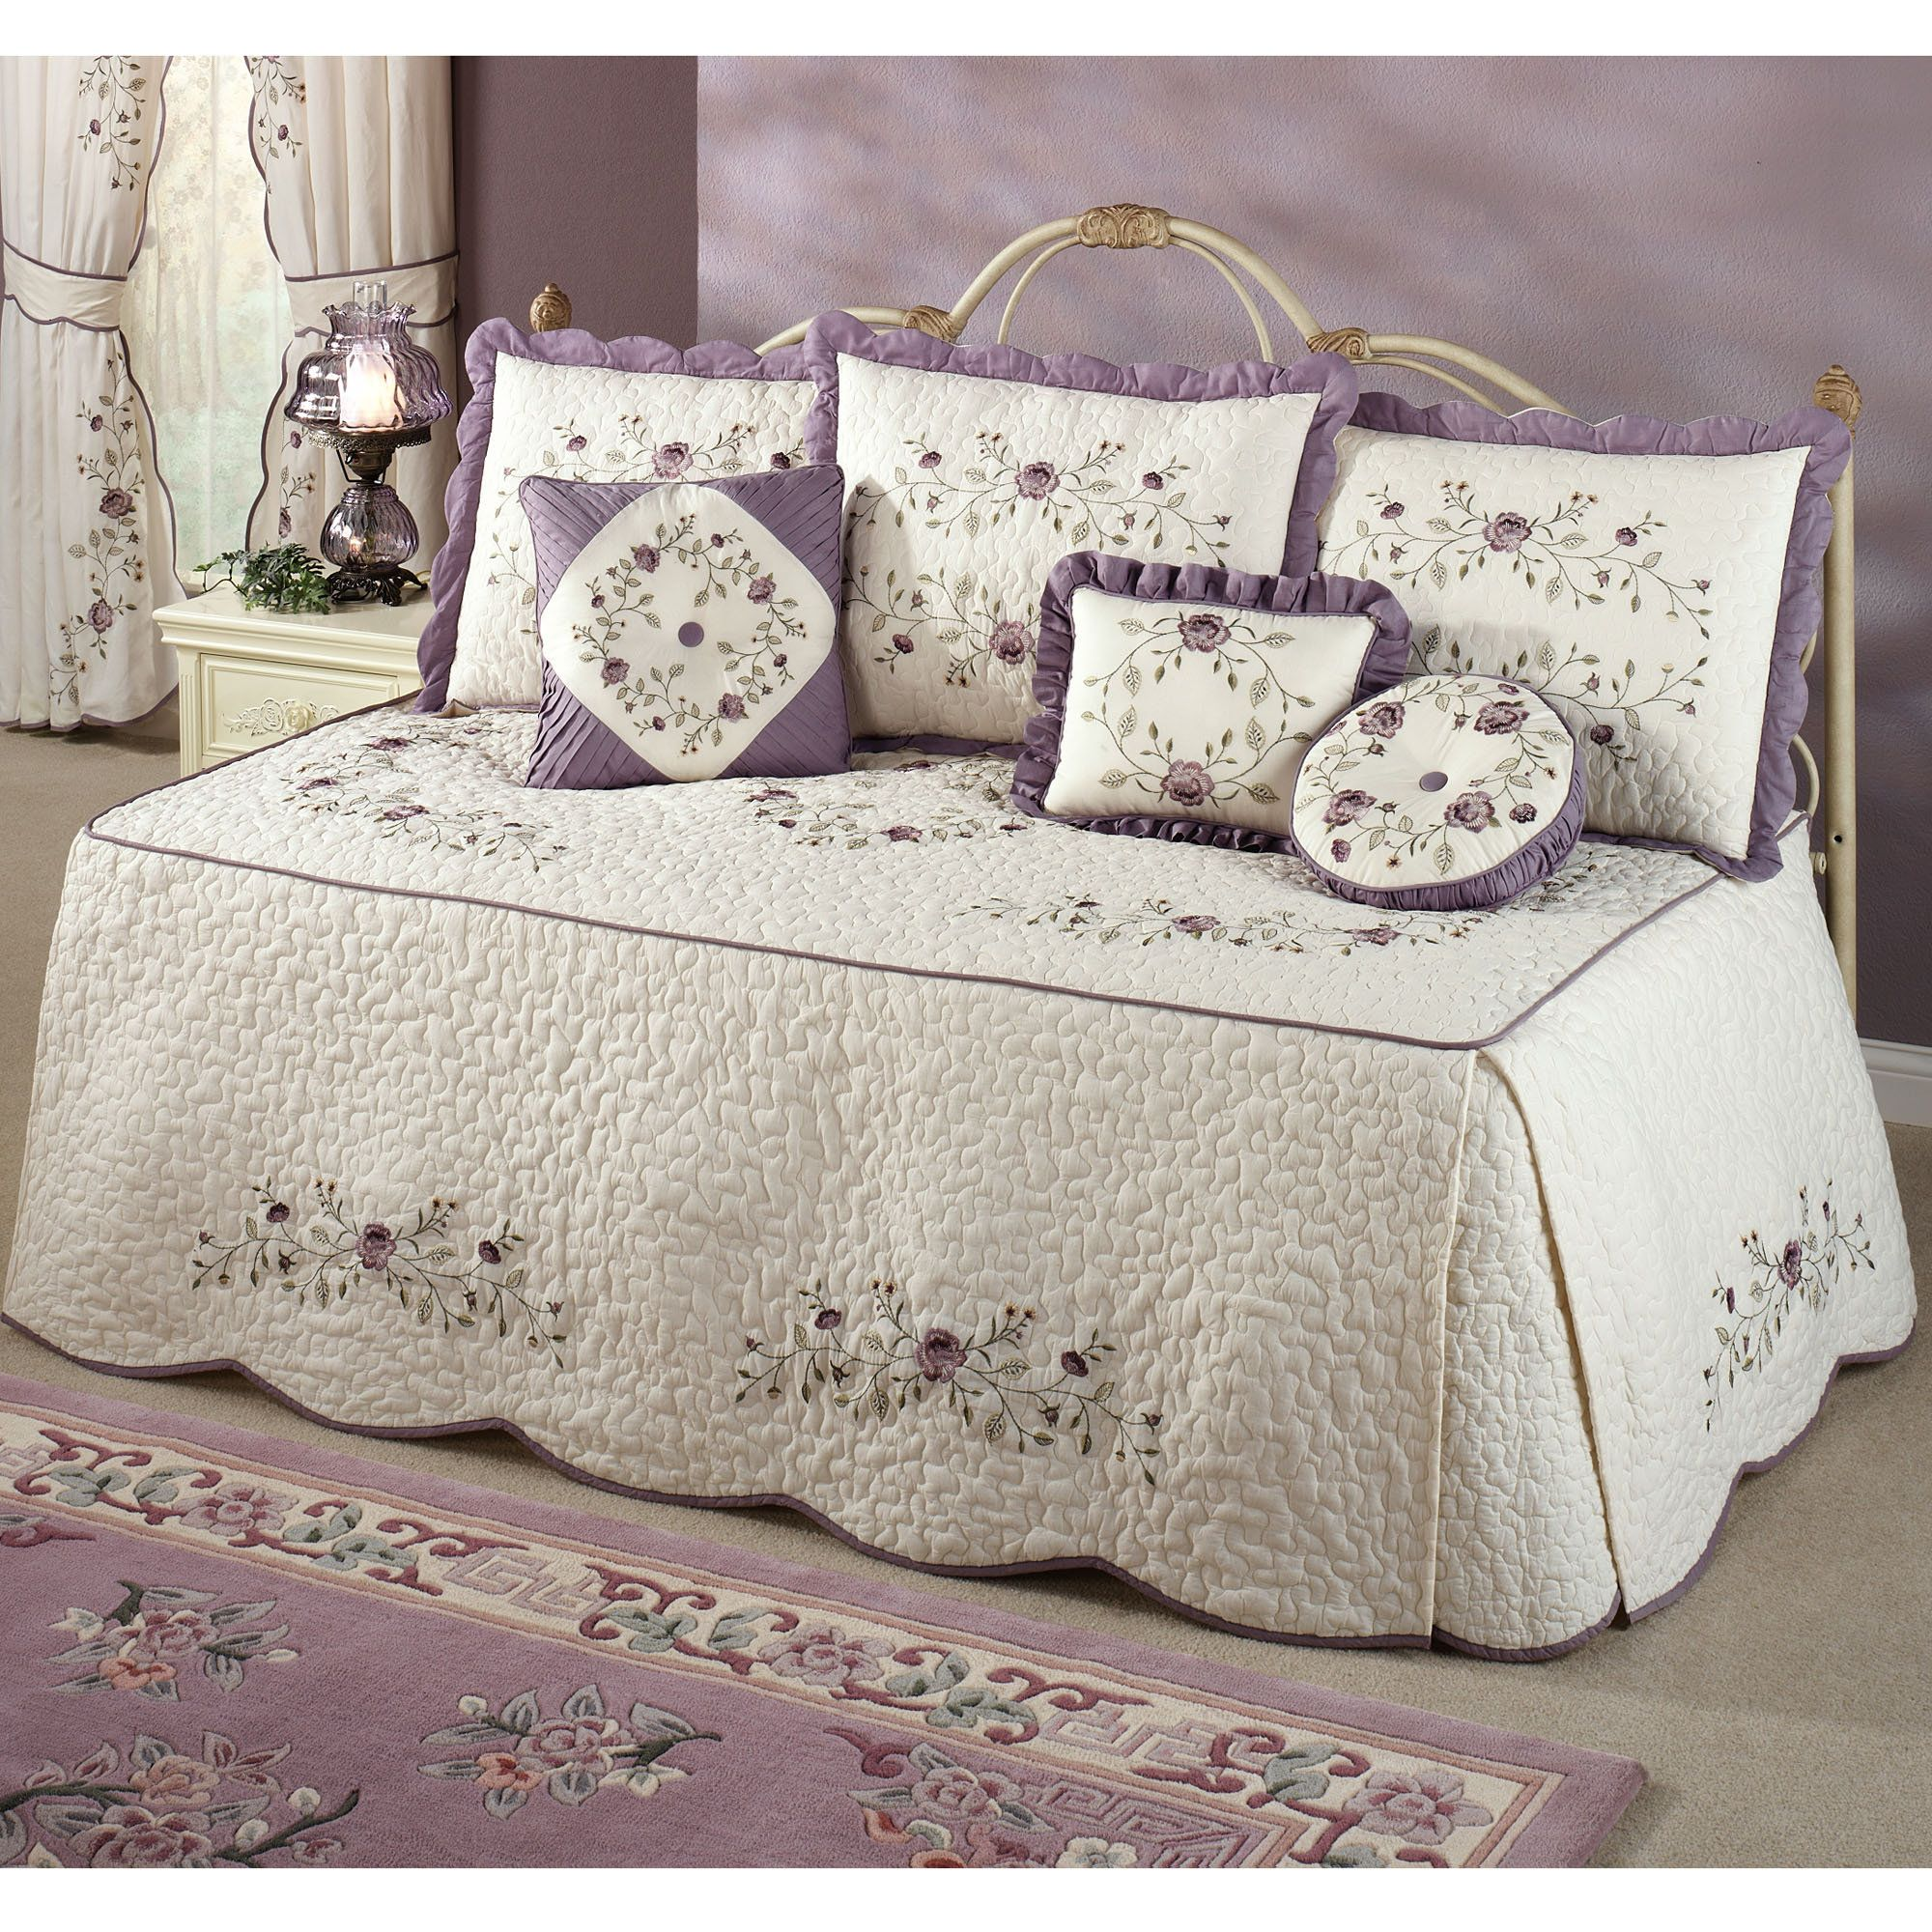 Lovely Vintage Bloom Lavender Daybed Bedding